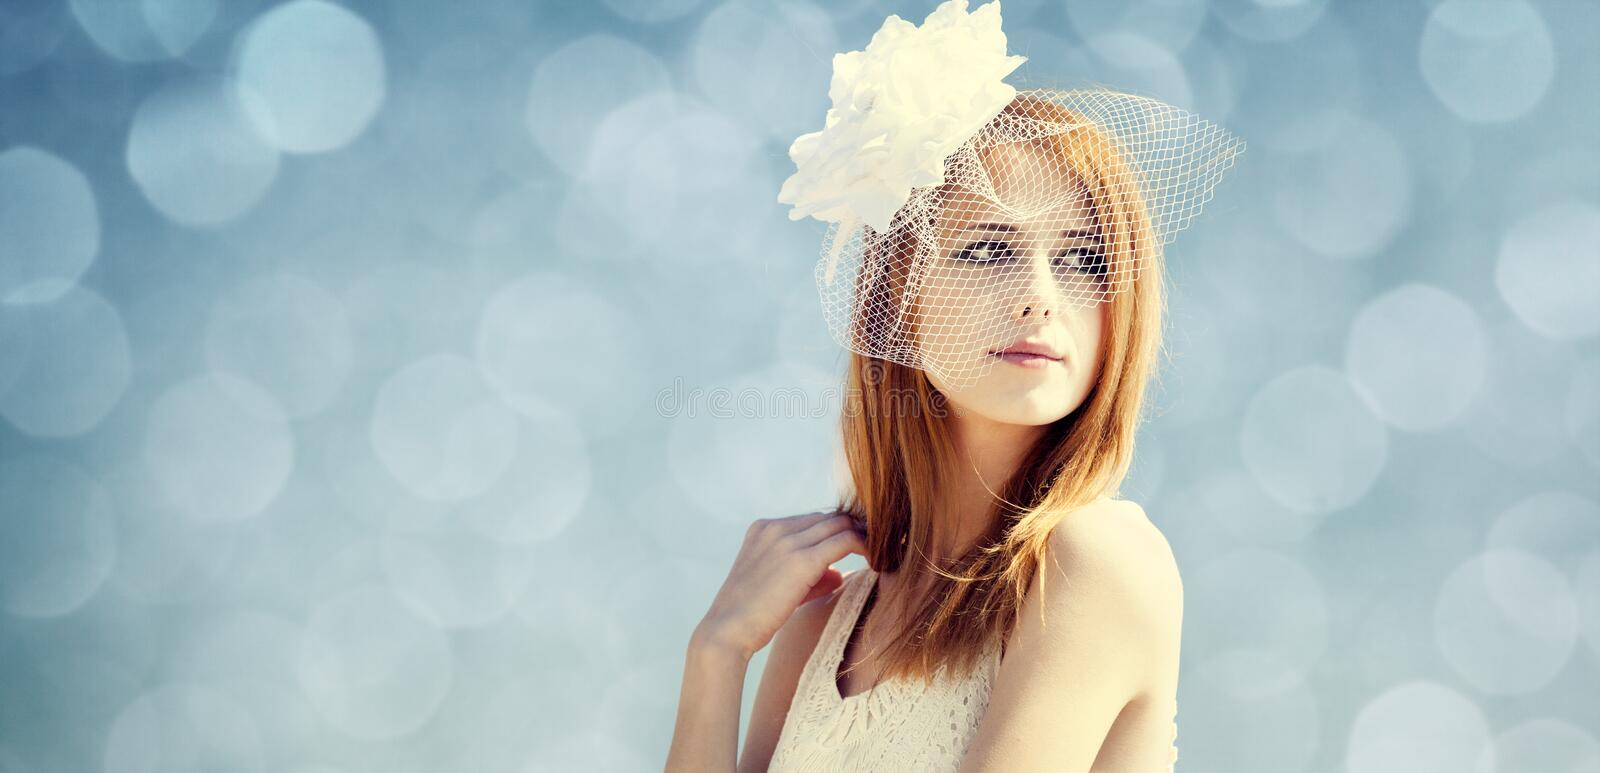 Young bride at blue sky background. Young bride at blue sky background royalty free stock photos